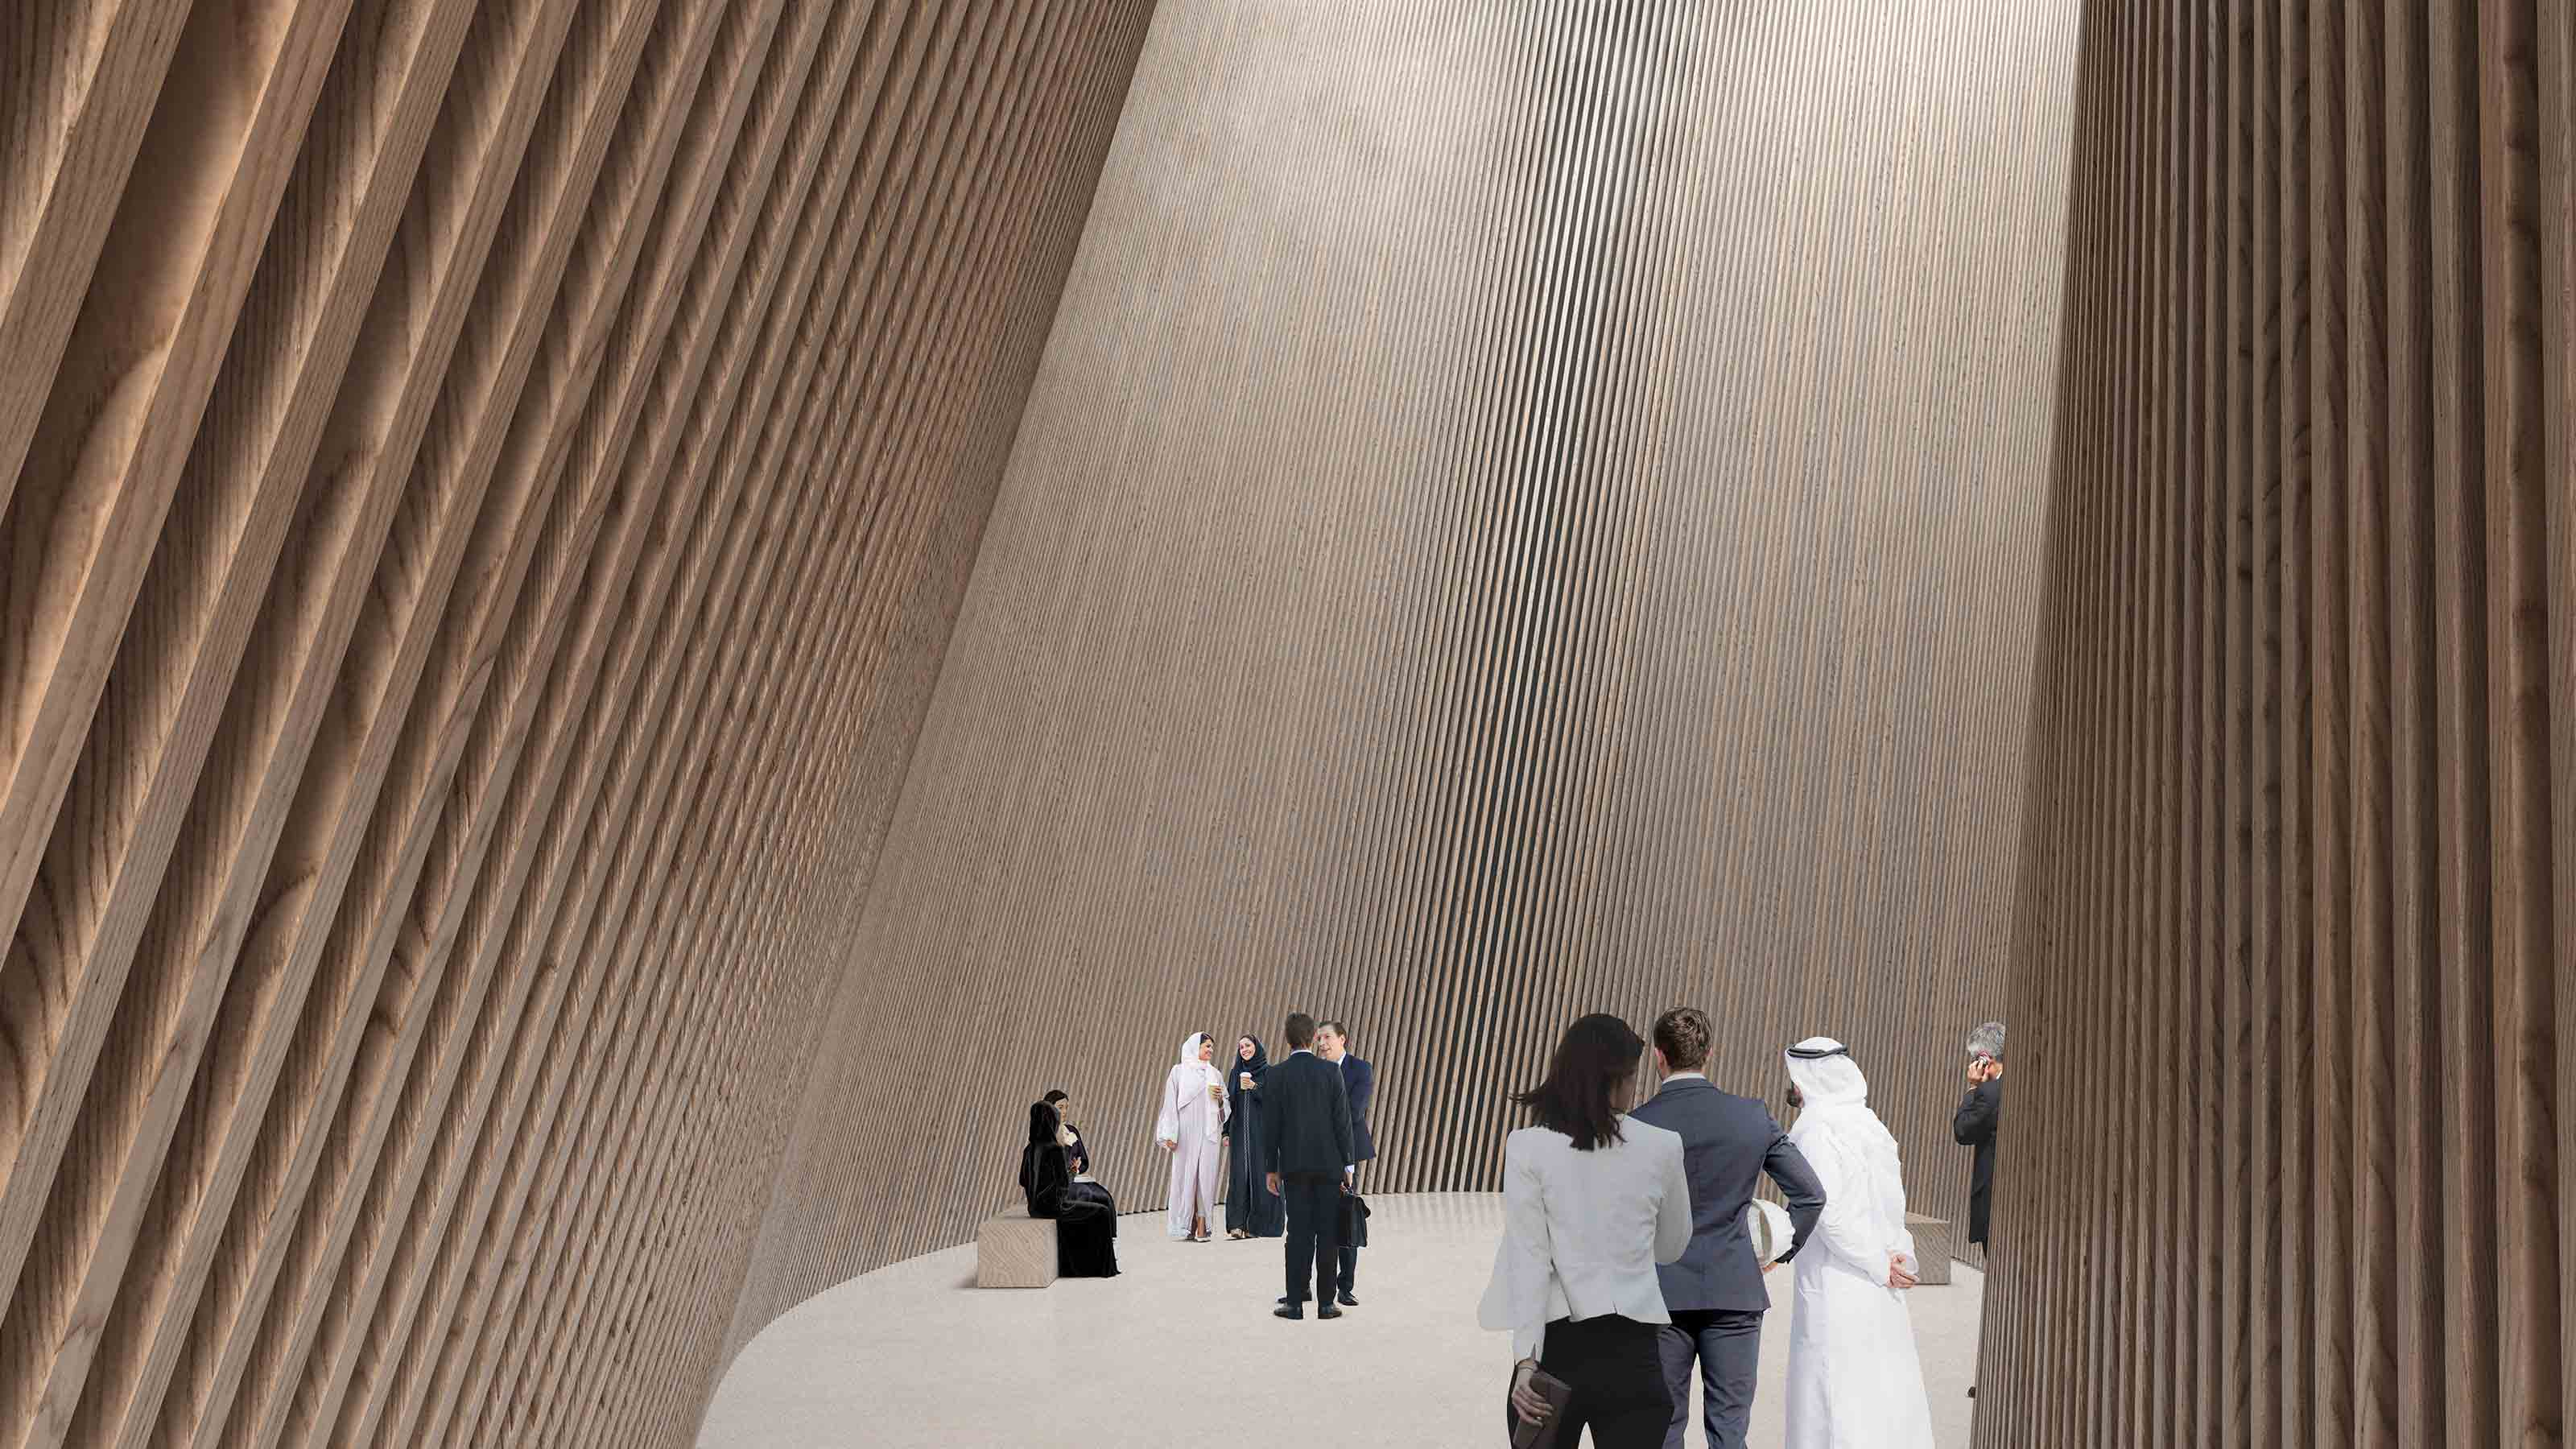 Expo 2020 Pavilions | Day of Dubai - Dubai's Leading Information